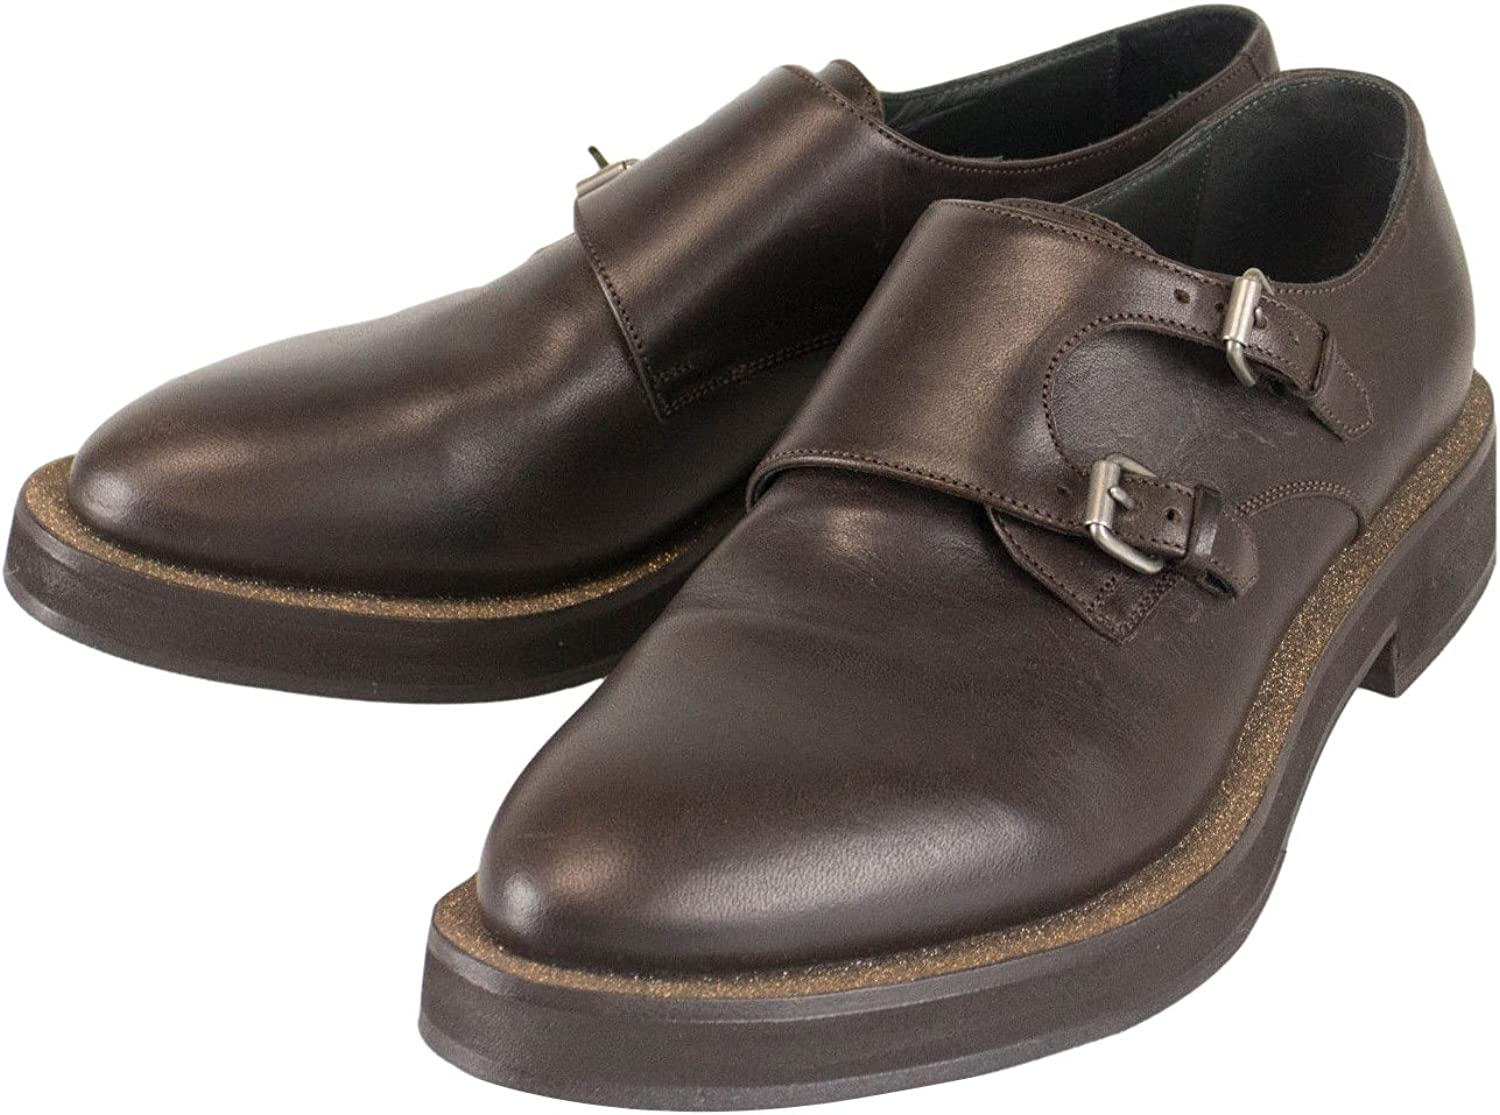 Brunello Cucinelli Brown Leather with Glitter Double Monkstrap shoes Size 35.5 5.5